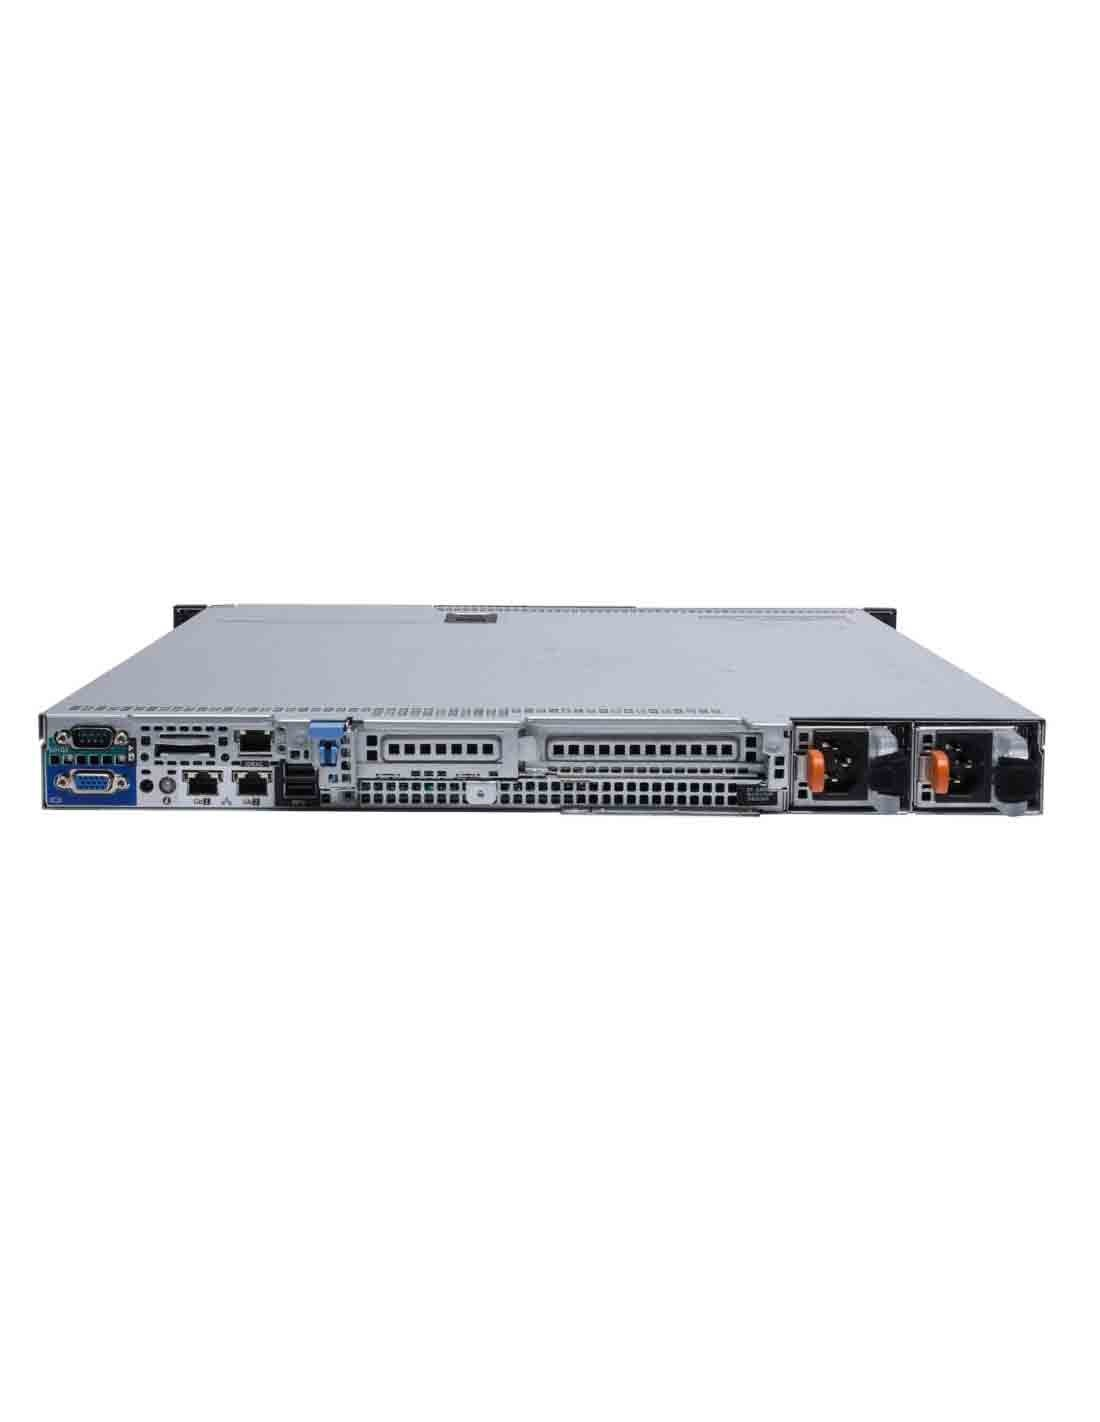 Dell PowerEdge R330 E3-1225v5 Rack Server Buy Online at a Cheap Price in UAE